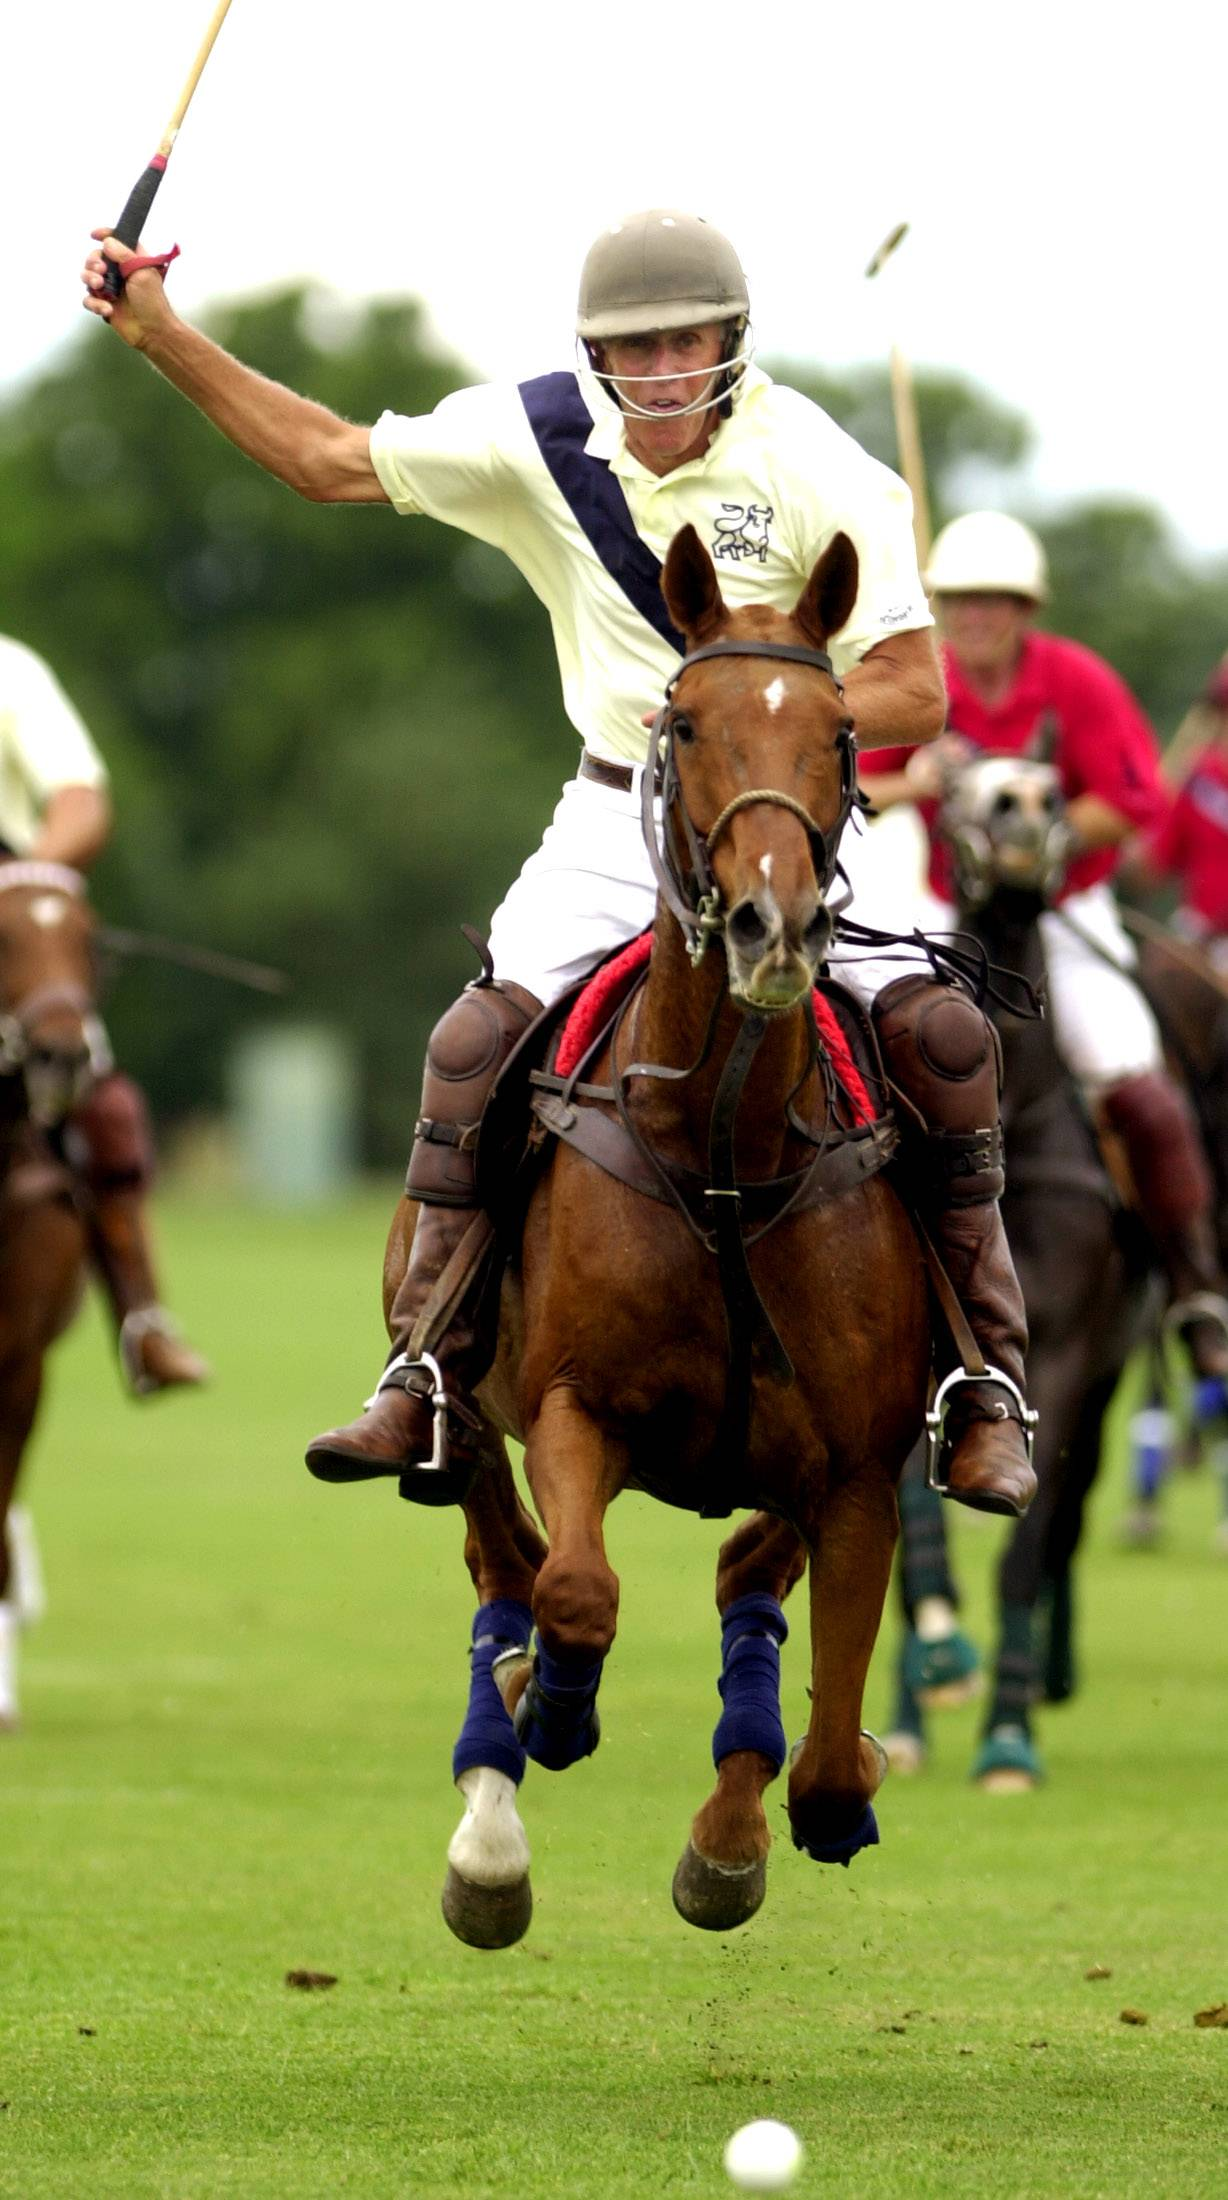 Oak Brook Polo Club will contest the International Cup, hosting the Wales Polo Team. The British team last played in Oak Brook 31 years ago with Prince Charles on the team.